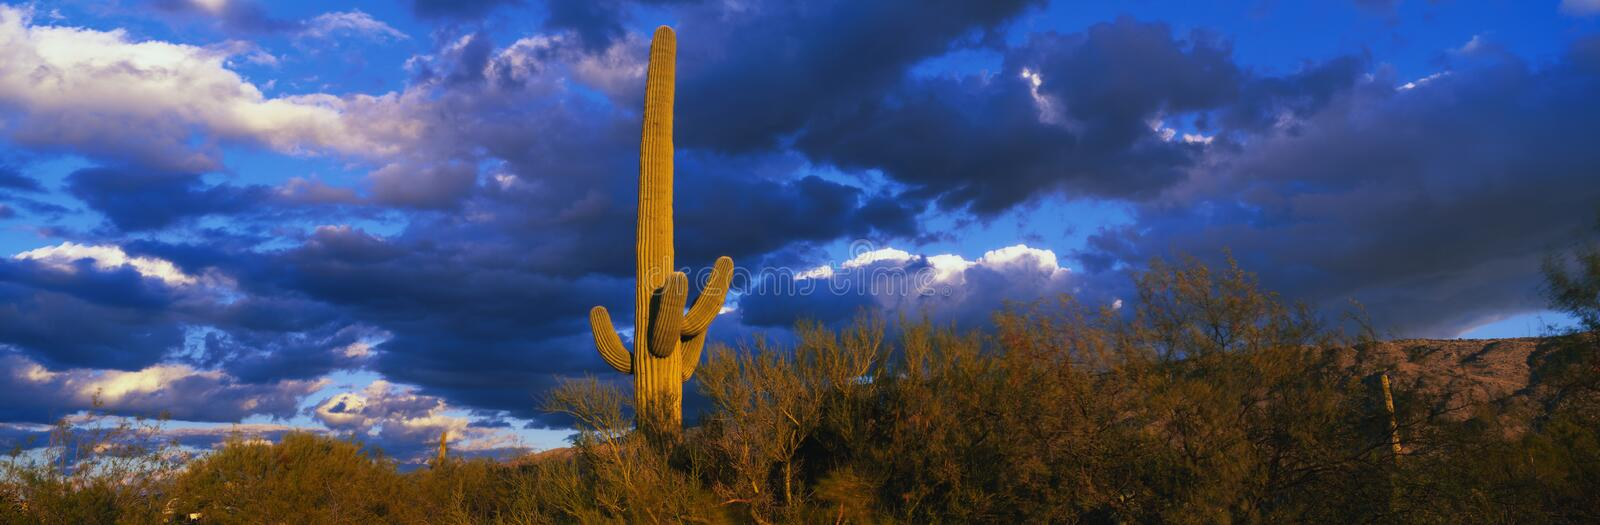 Stationnement national de Saguaro, Tucson, AZ images stock